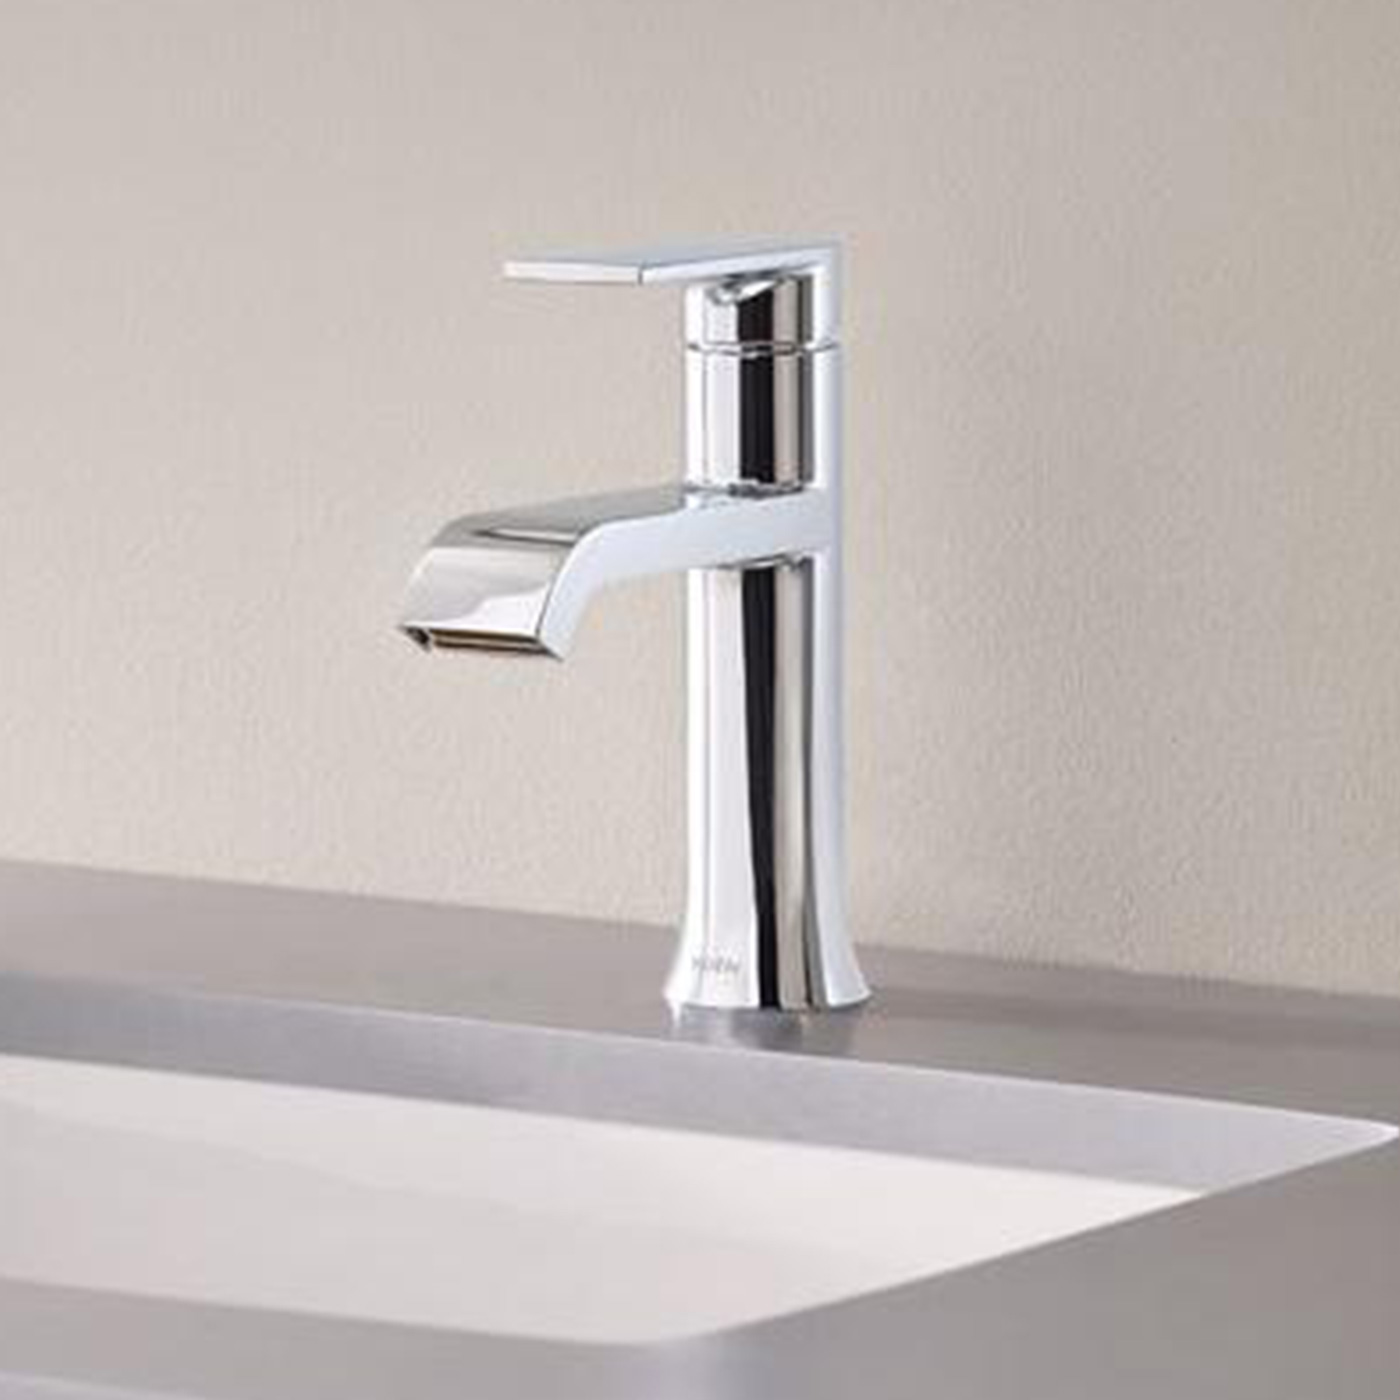 Ideas Bathroom Sink Faucets Bathroom Faucets For Your Sink Shower Head And Bathtub The Home